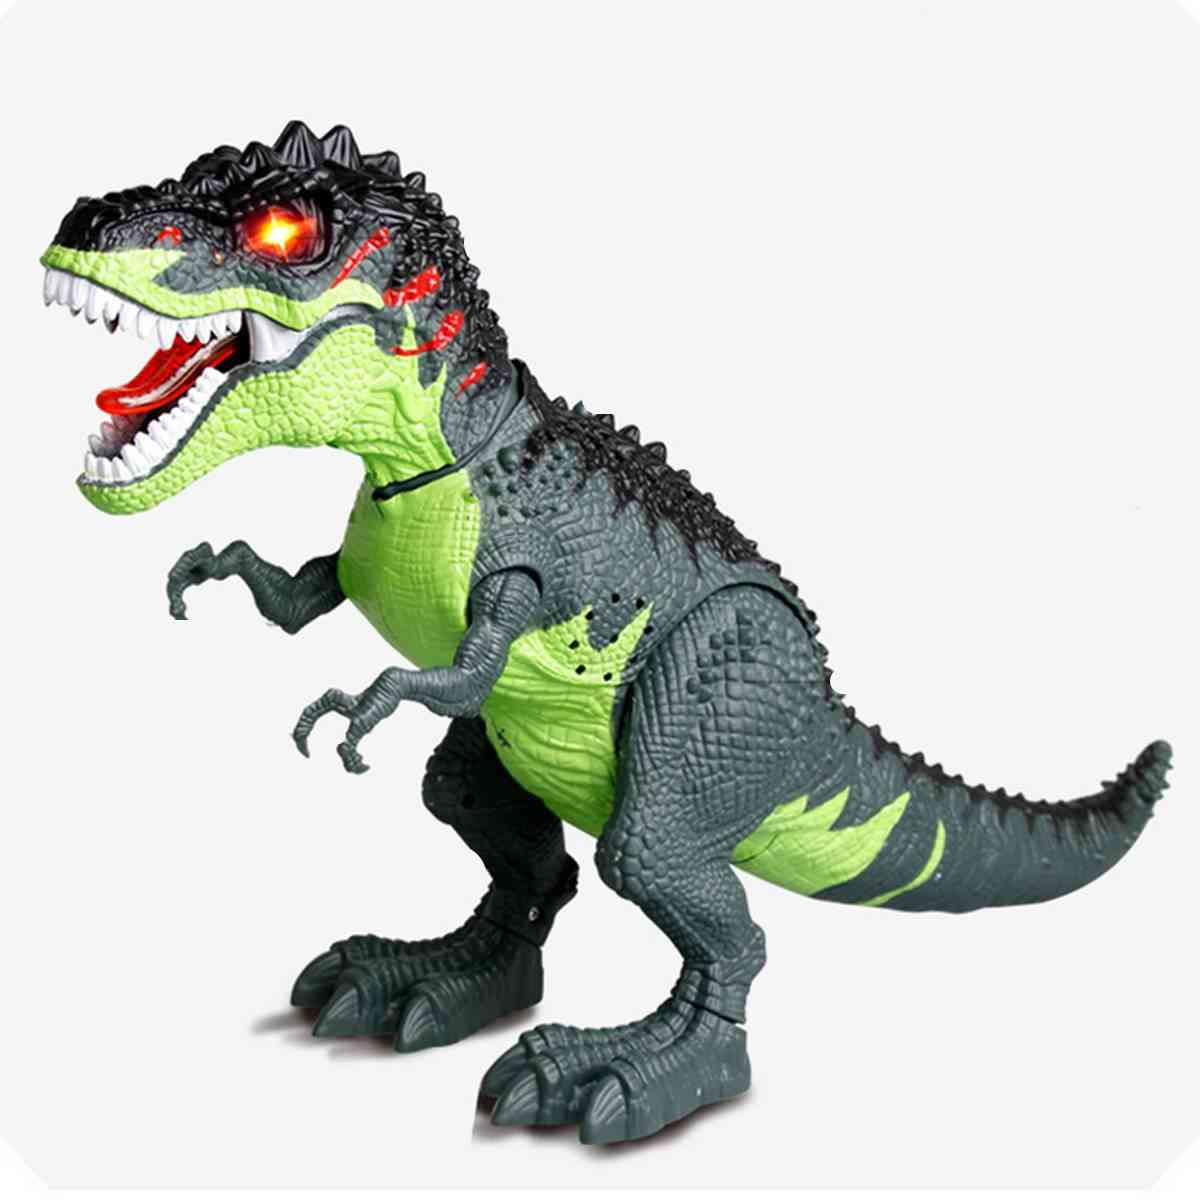 Electric Water Spraying And Egg Laying Dinosaur-action Toy